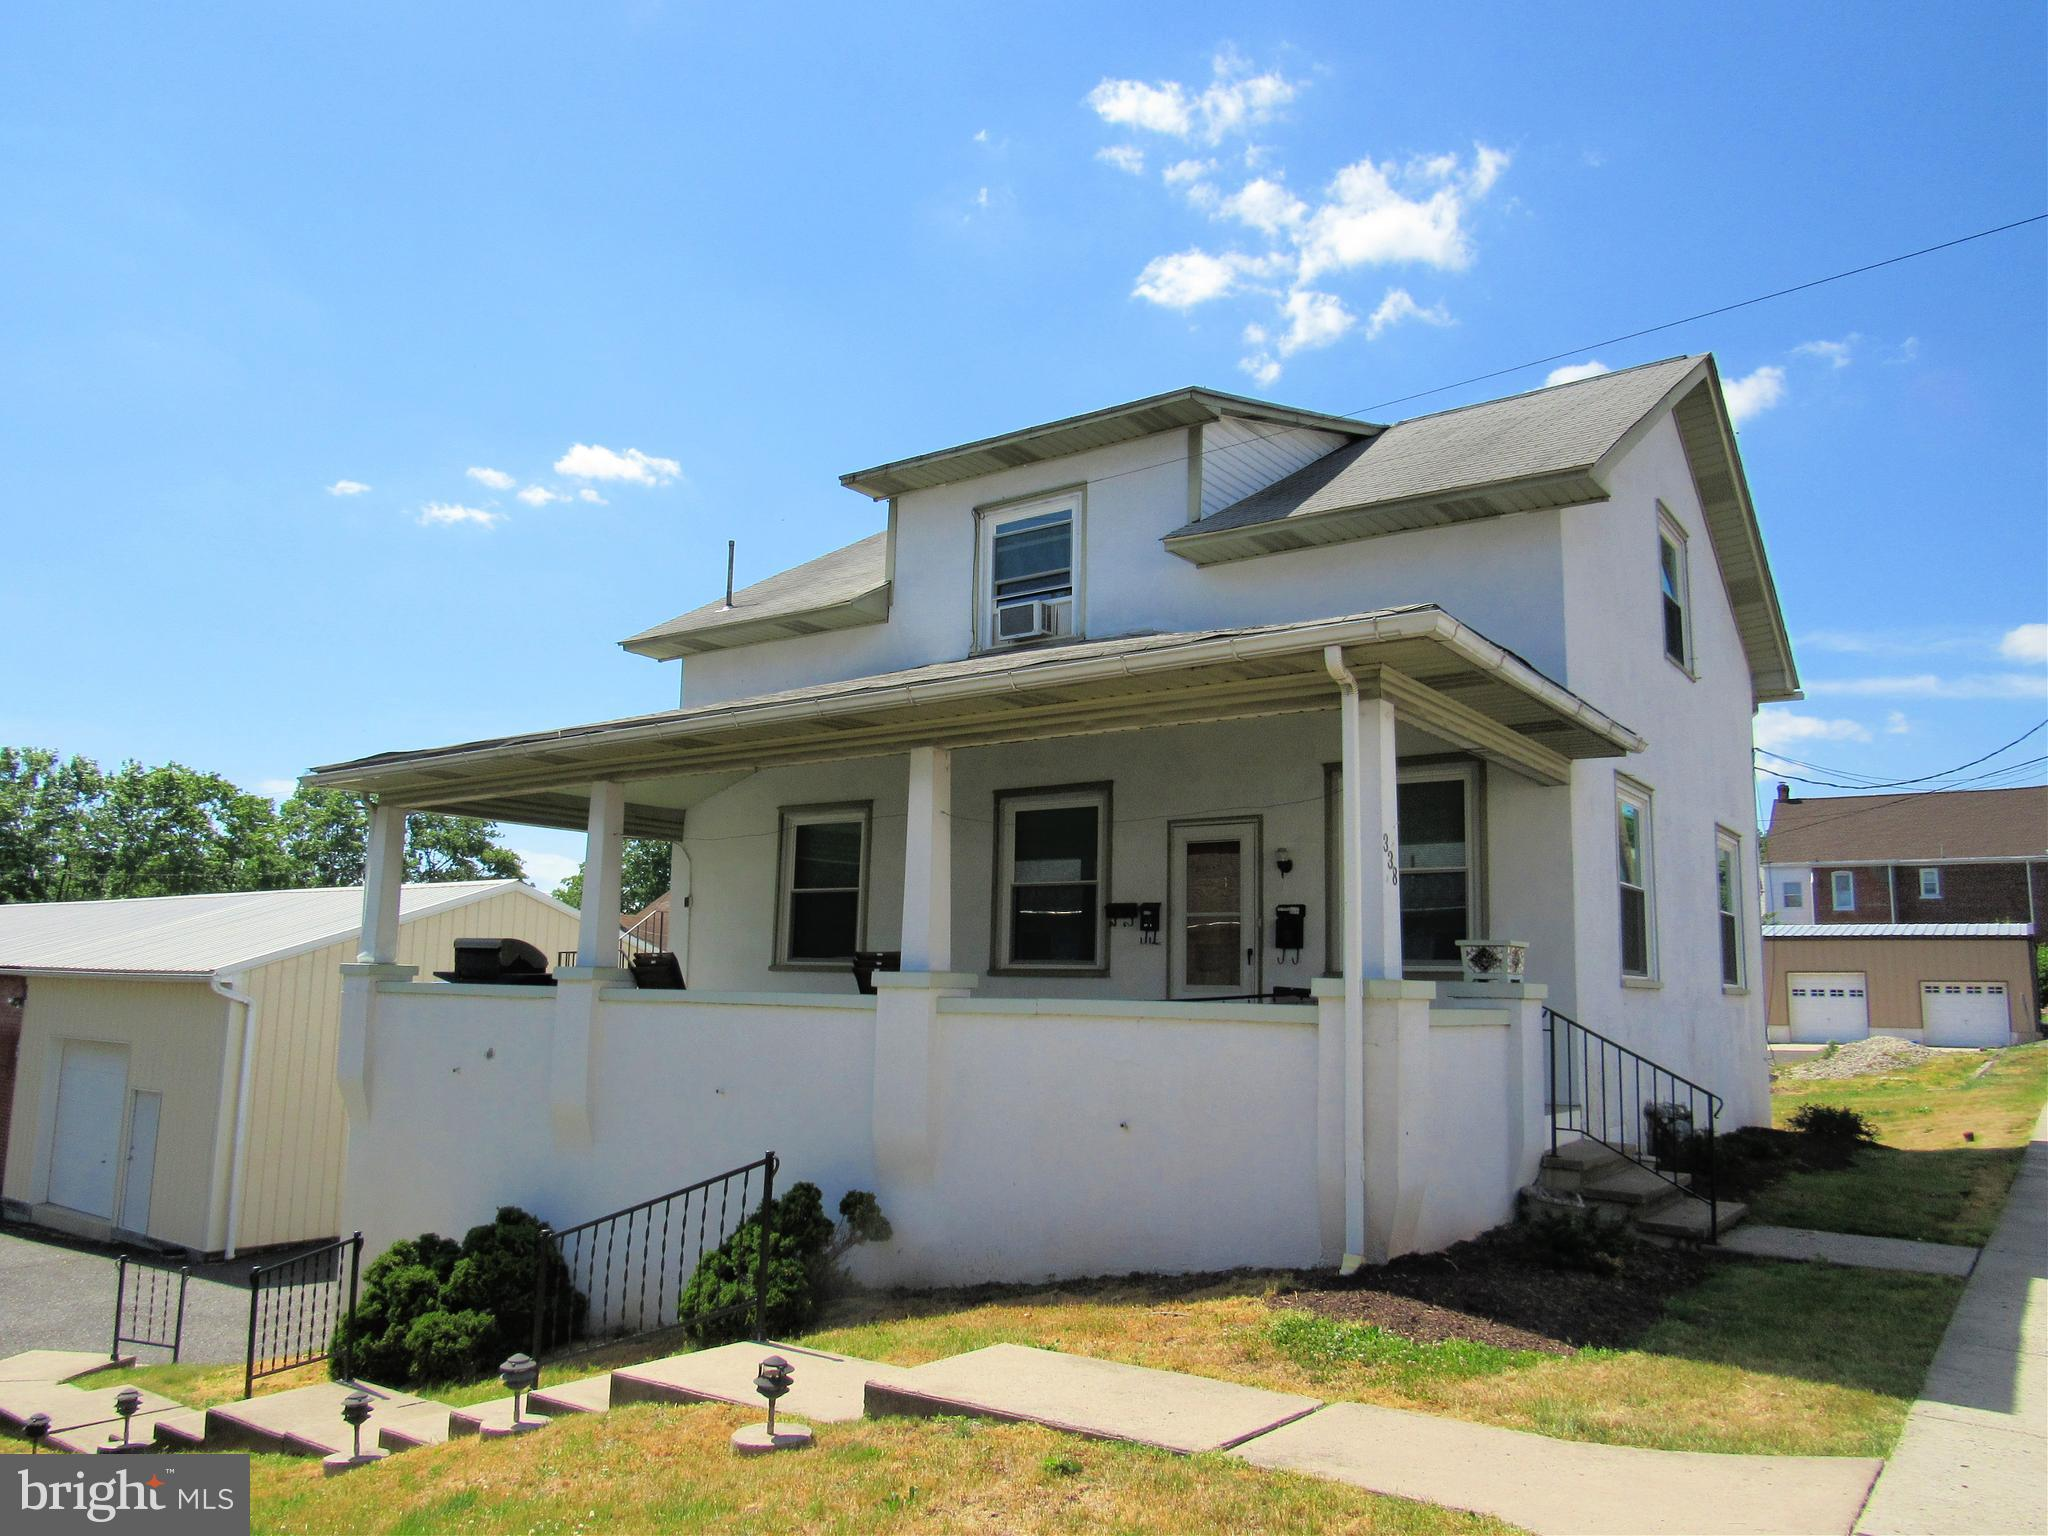 Great opportunity in this triplex plus rear light industrial rental.  Residential tenants pay electric and heat.  Rear light industrial tenant (Knoll International) pays all utilities.  Extra income from coin operated washer and dryer in basement.  Propety has been maintained very well.  Call listing agent for details.